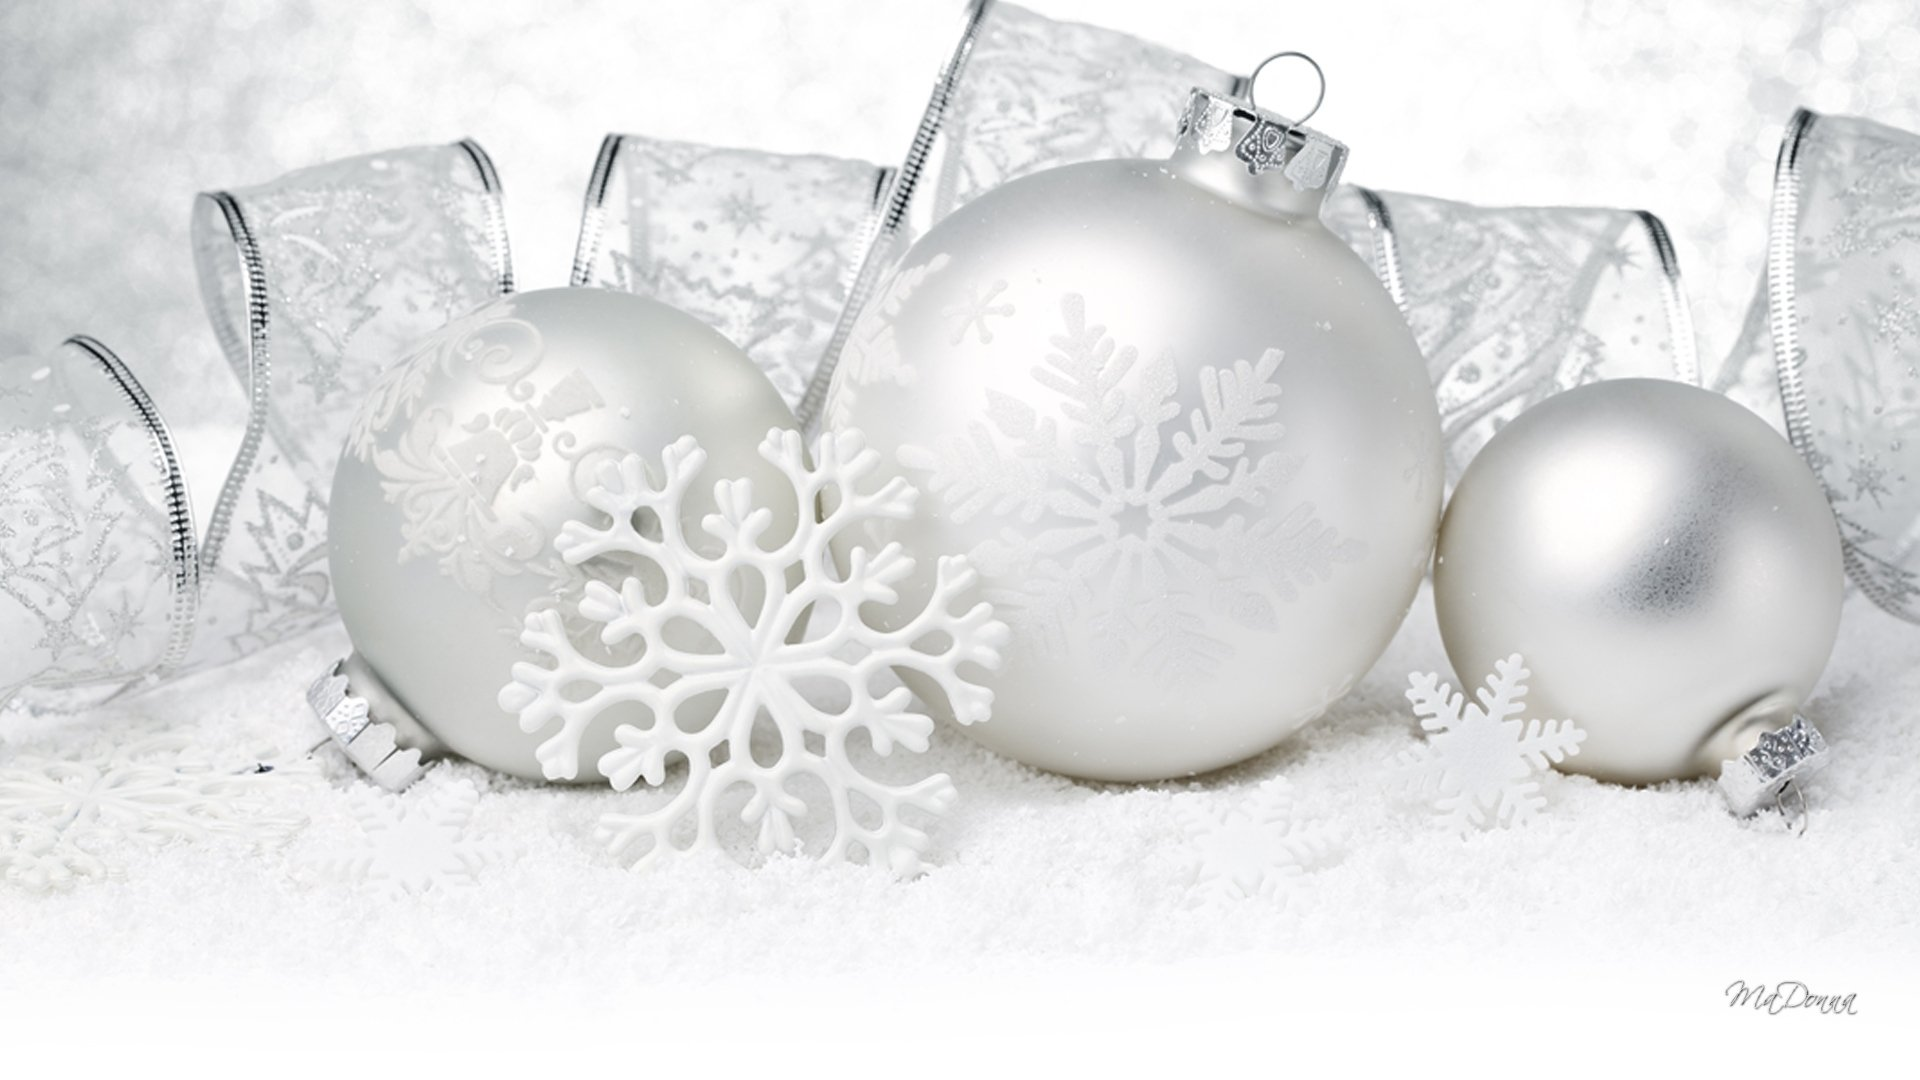 White and Silver Christmas Ornaments Full HD Wallpaper and